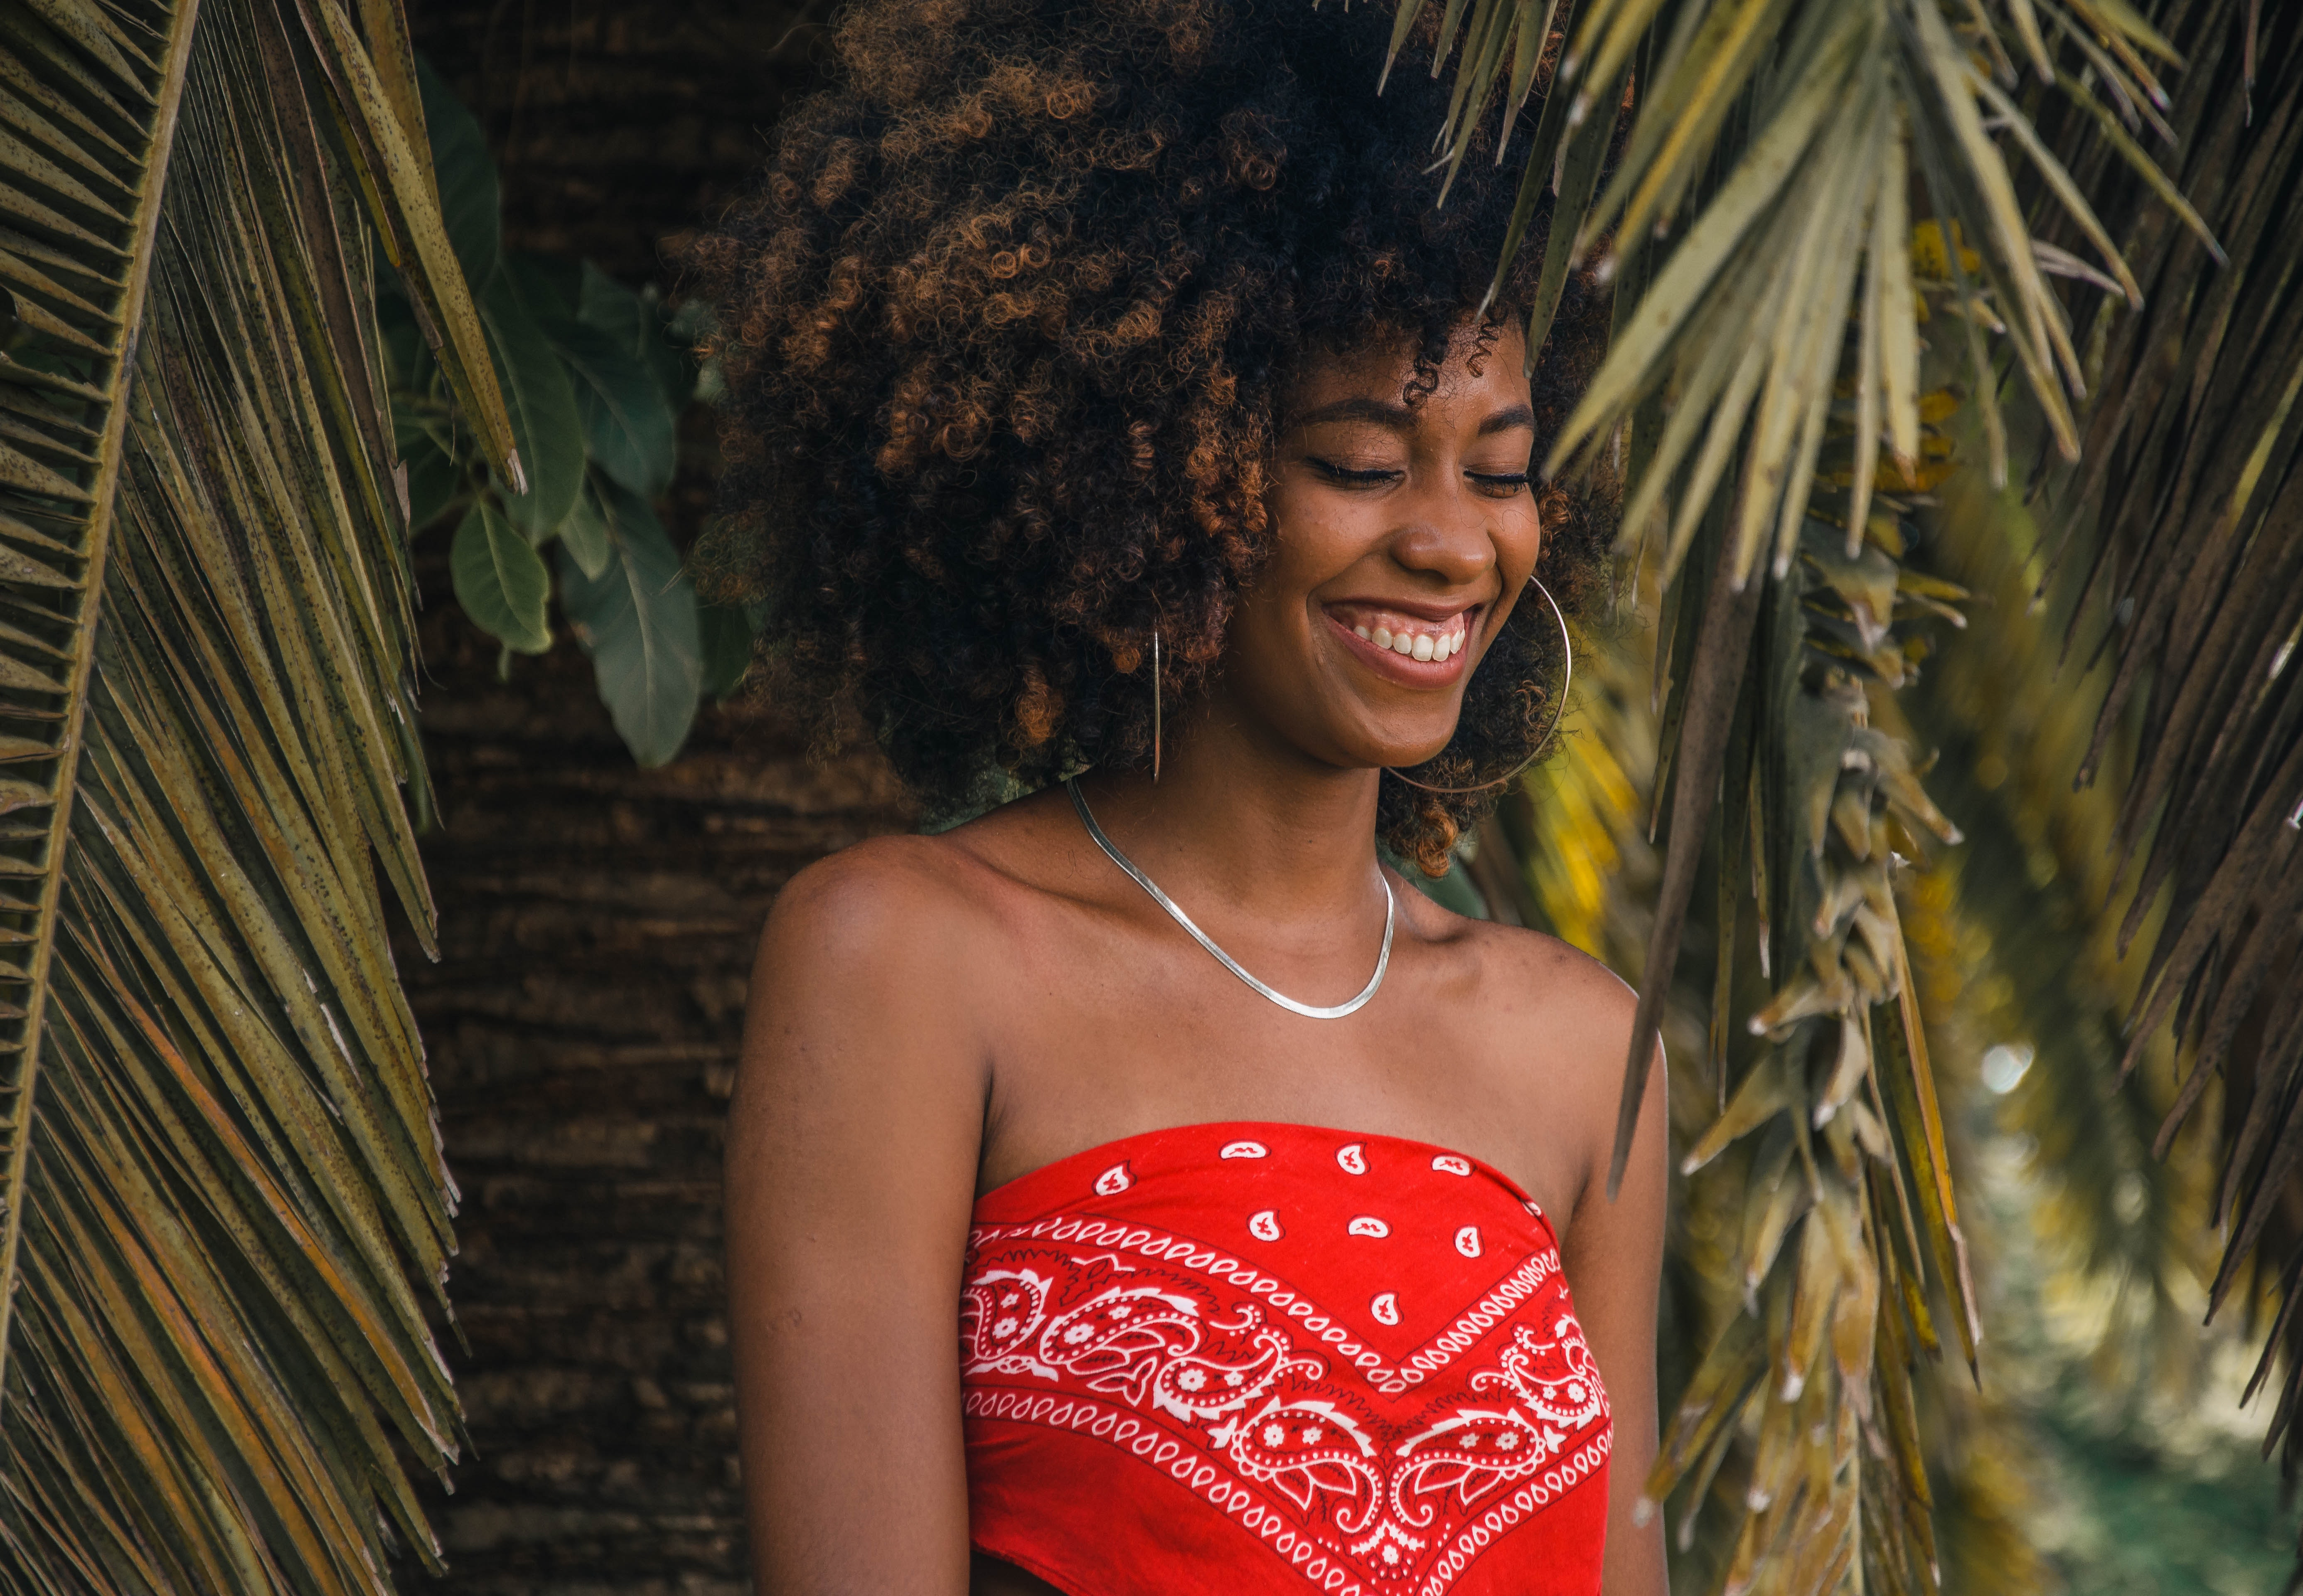 Girl smiling and summer dressed posing in front of a palm tree